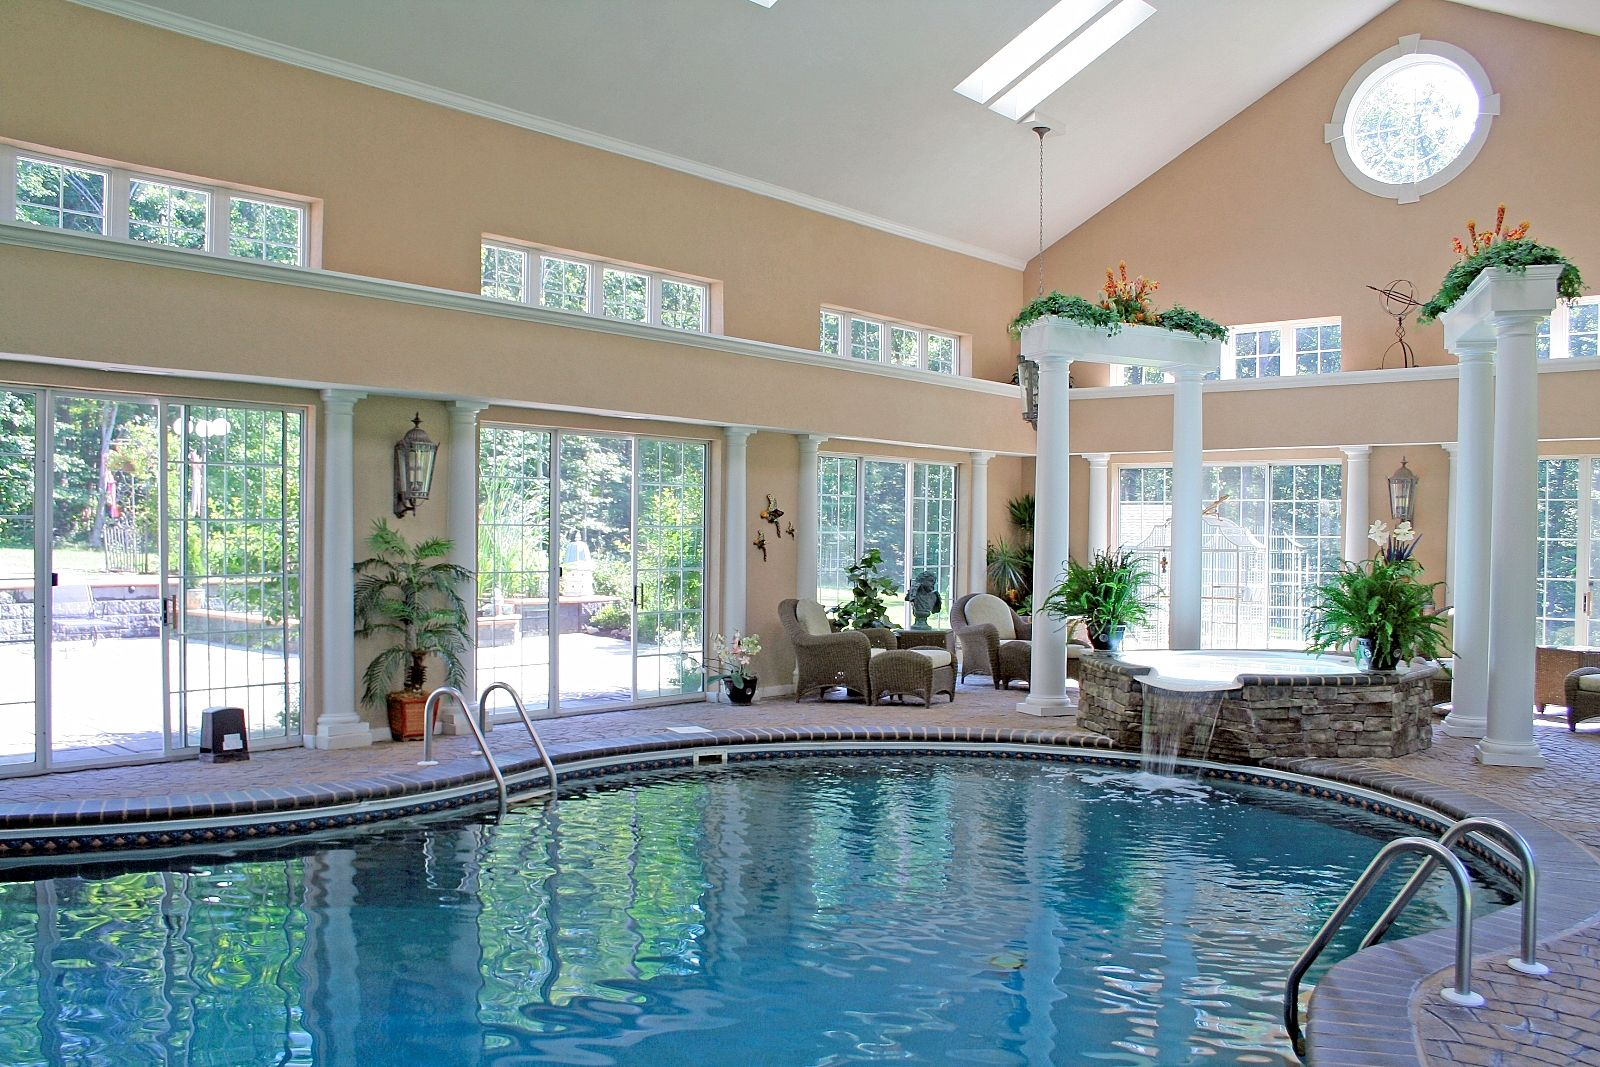 Indoor Pools In Homes Alluring The House Swimming Pool Will Not Make The Home Become Perfect If Design Decoration